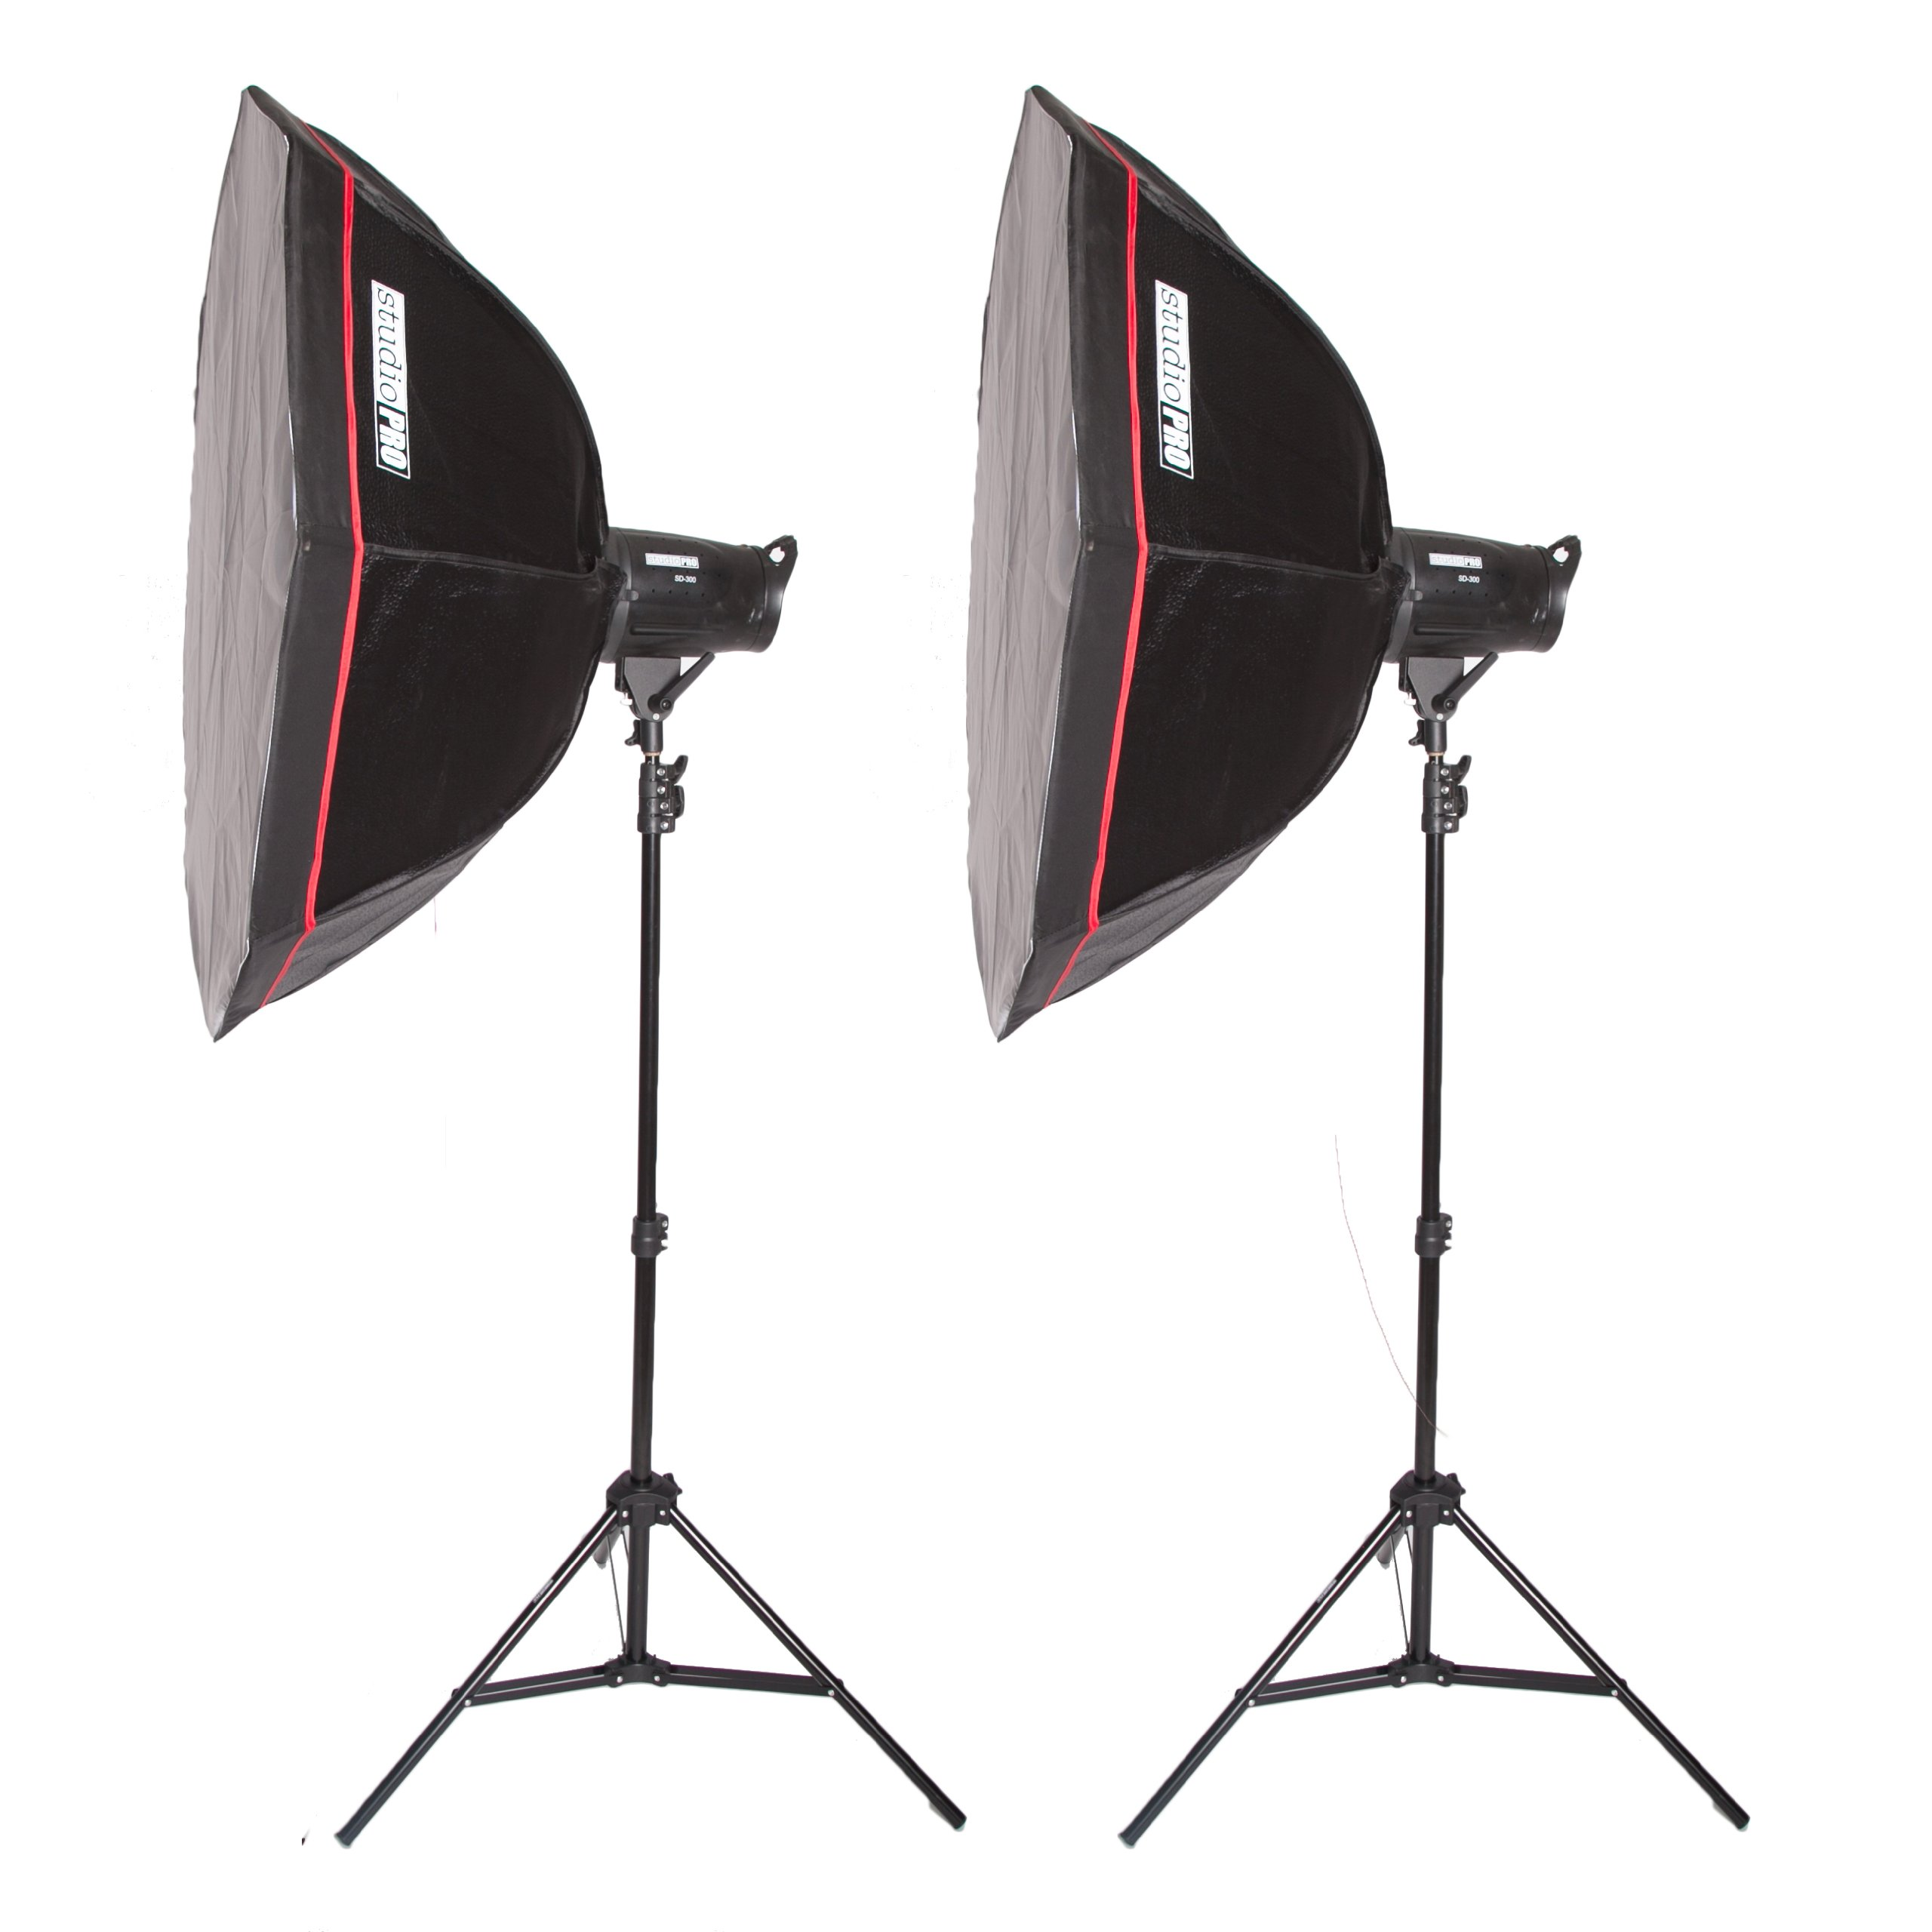 Fovitec StudioPRO Photography Studio Flash 800W/s Two Strobe Monolight 48'' Octagon Softbox Kit by Fovitec